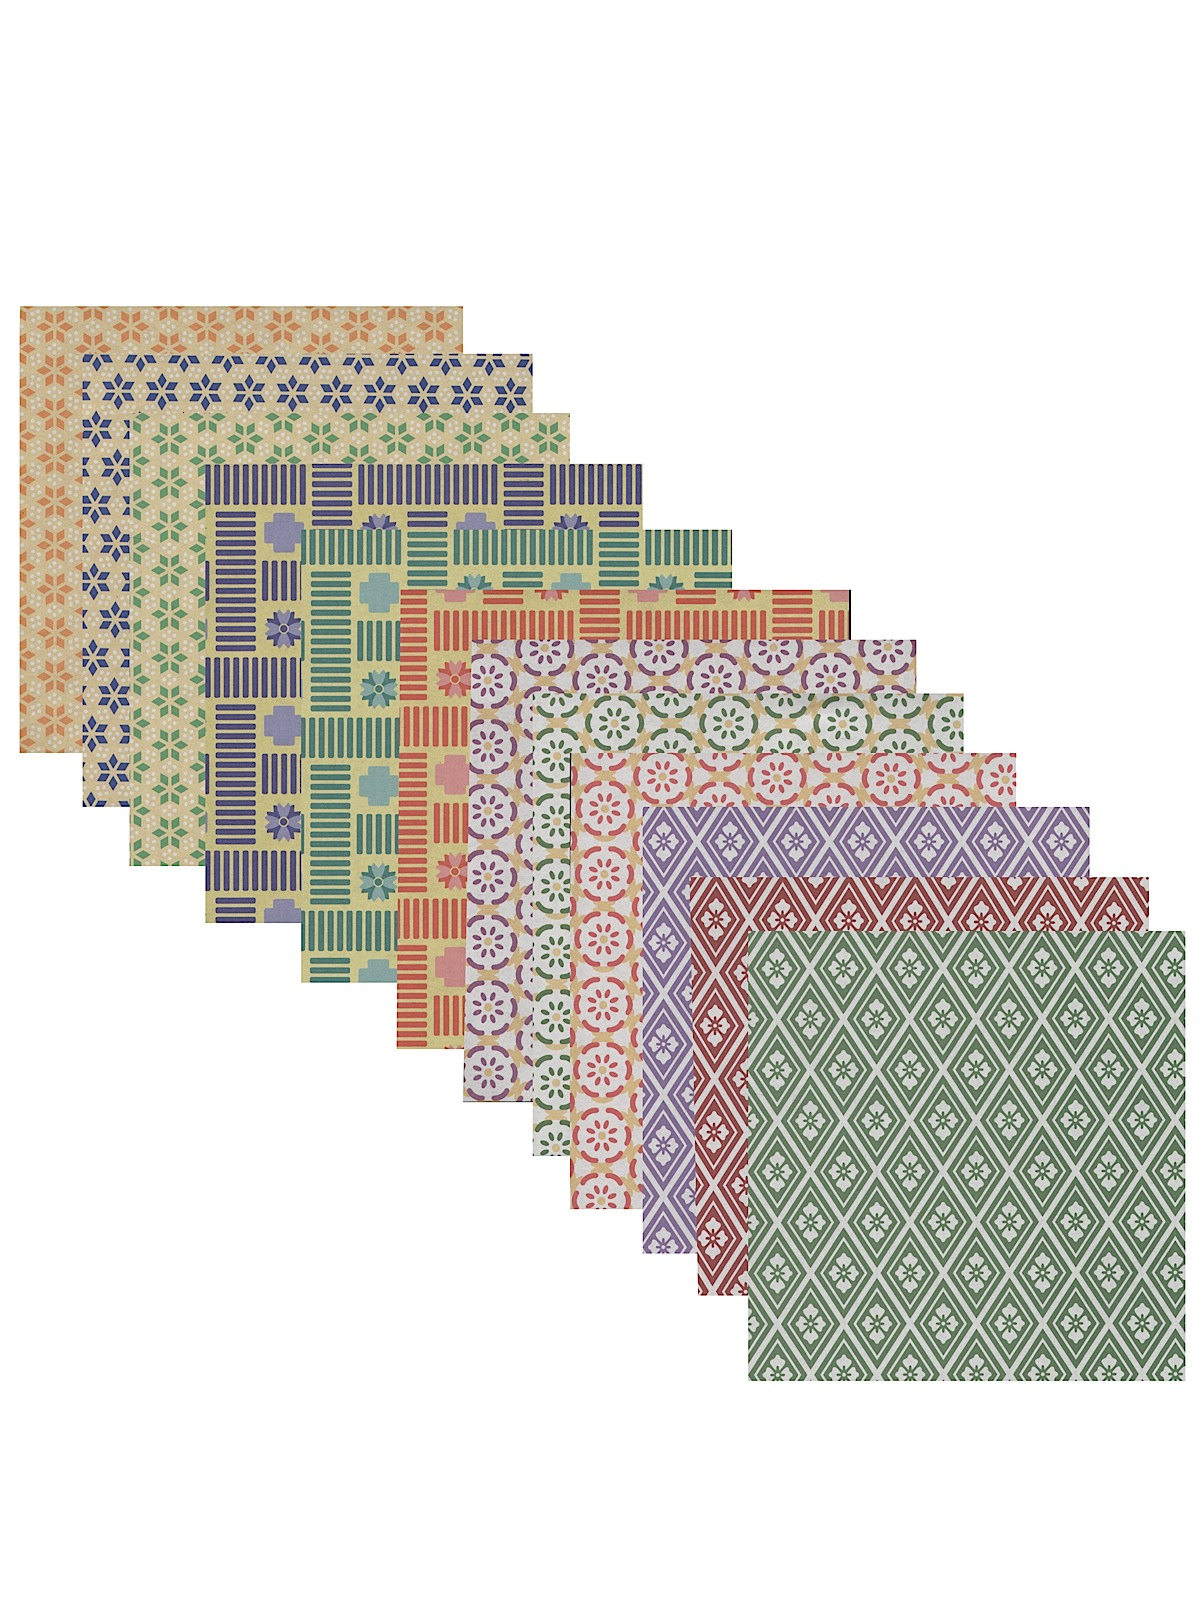 Origami Paper 6 In. X 6 In. Komon Chiyogami 48 Sheets